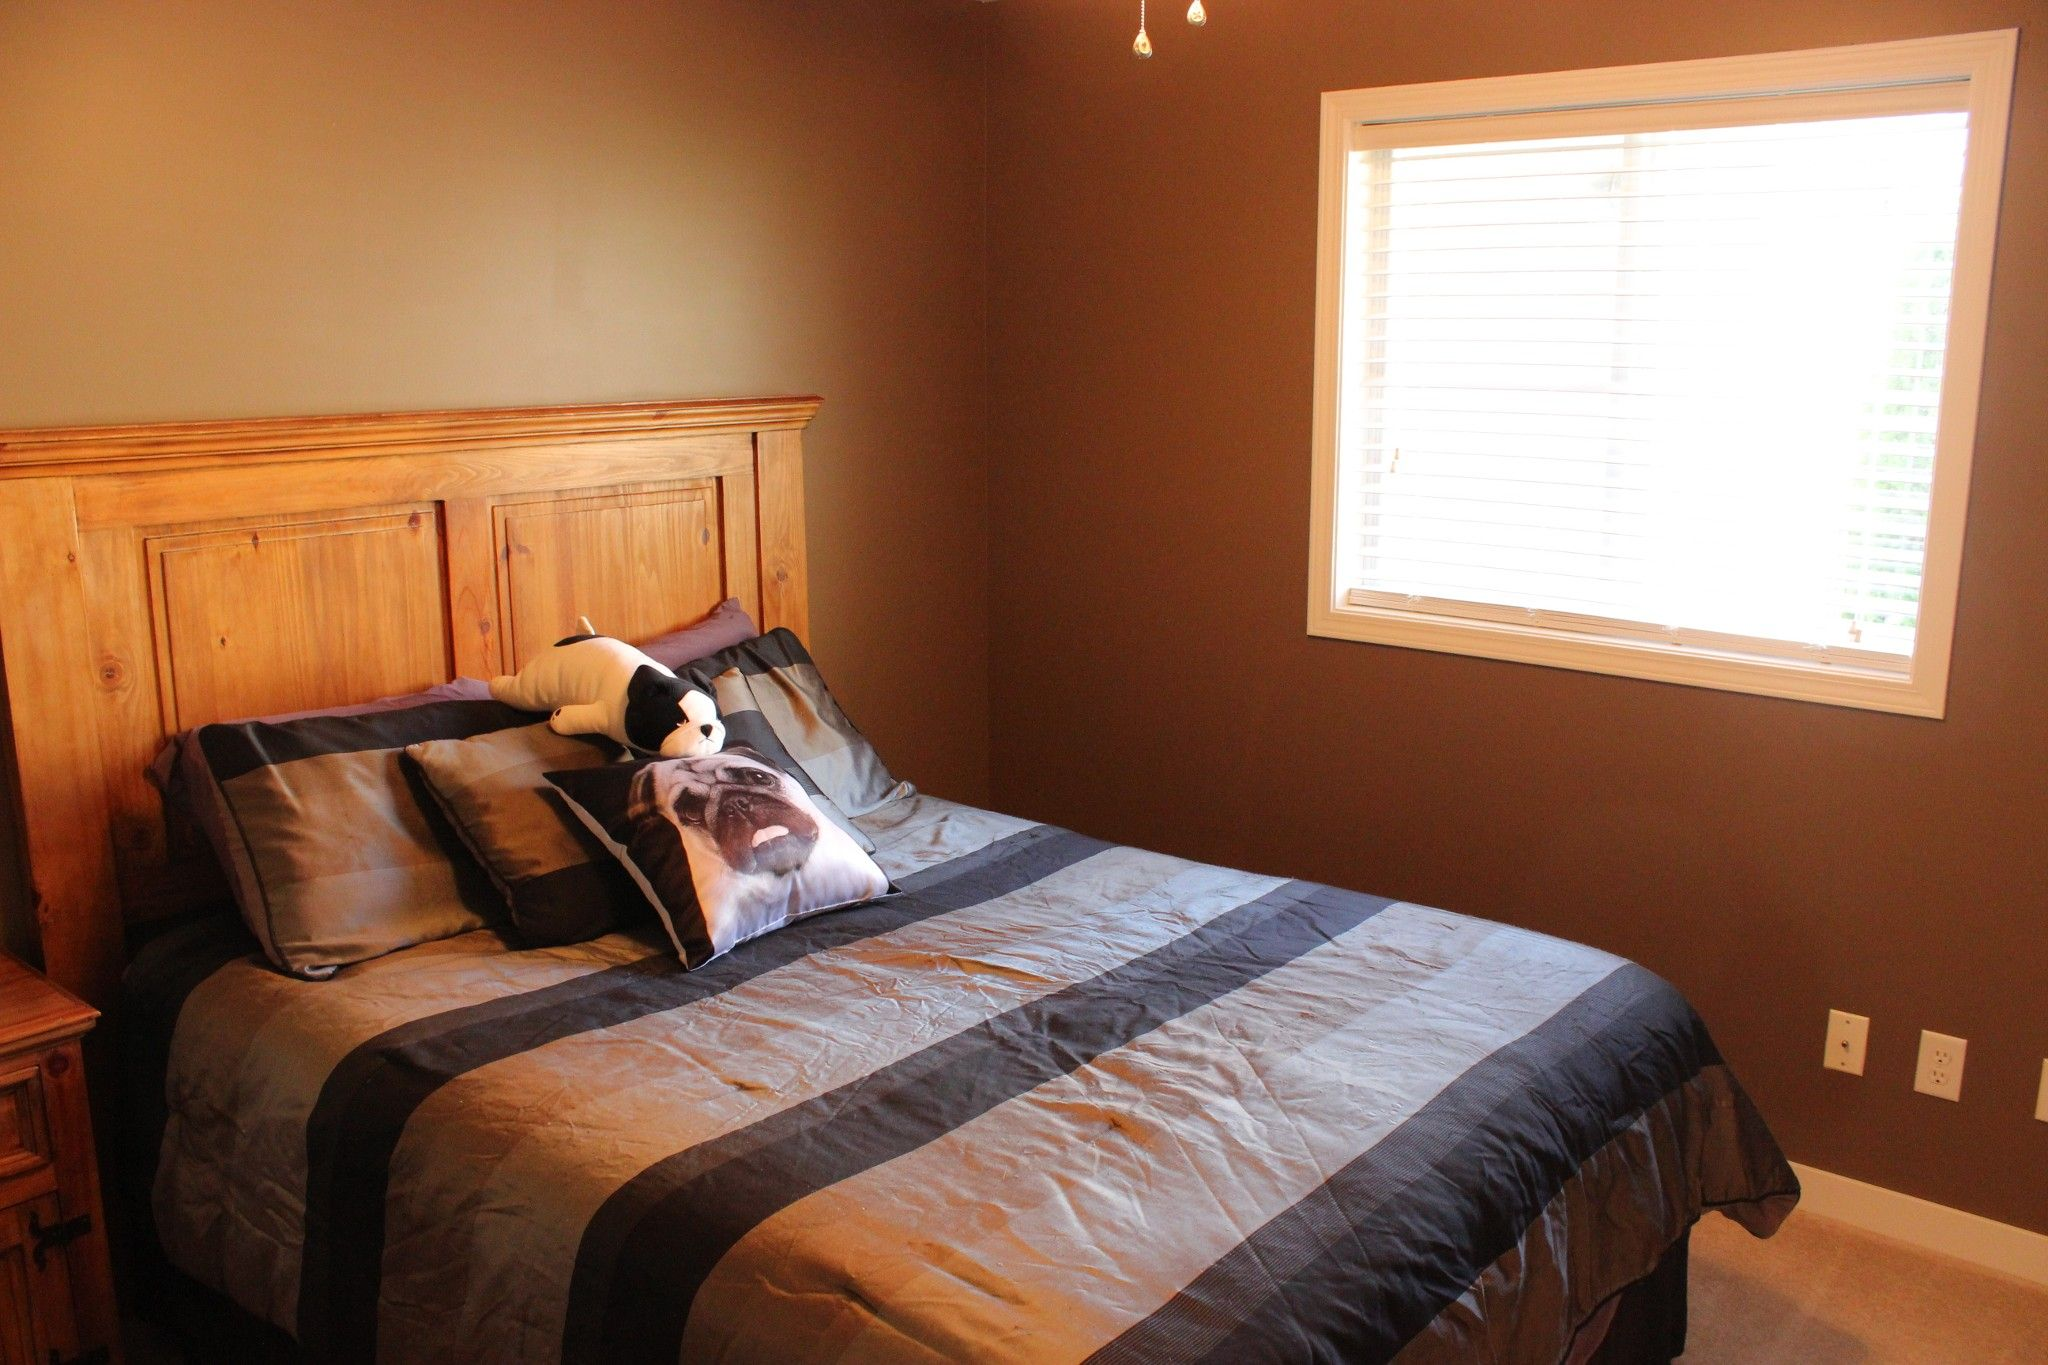 Photo 12: Photos: 3696 Navatanee Drive in Kamloops: South Thompson Valley House for sale : MLS®# 148660